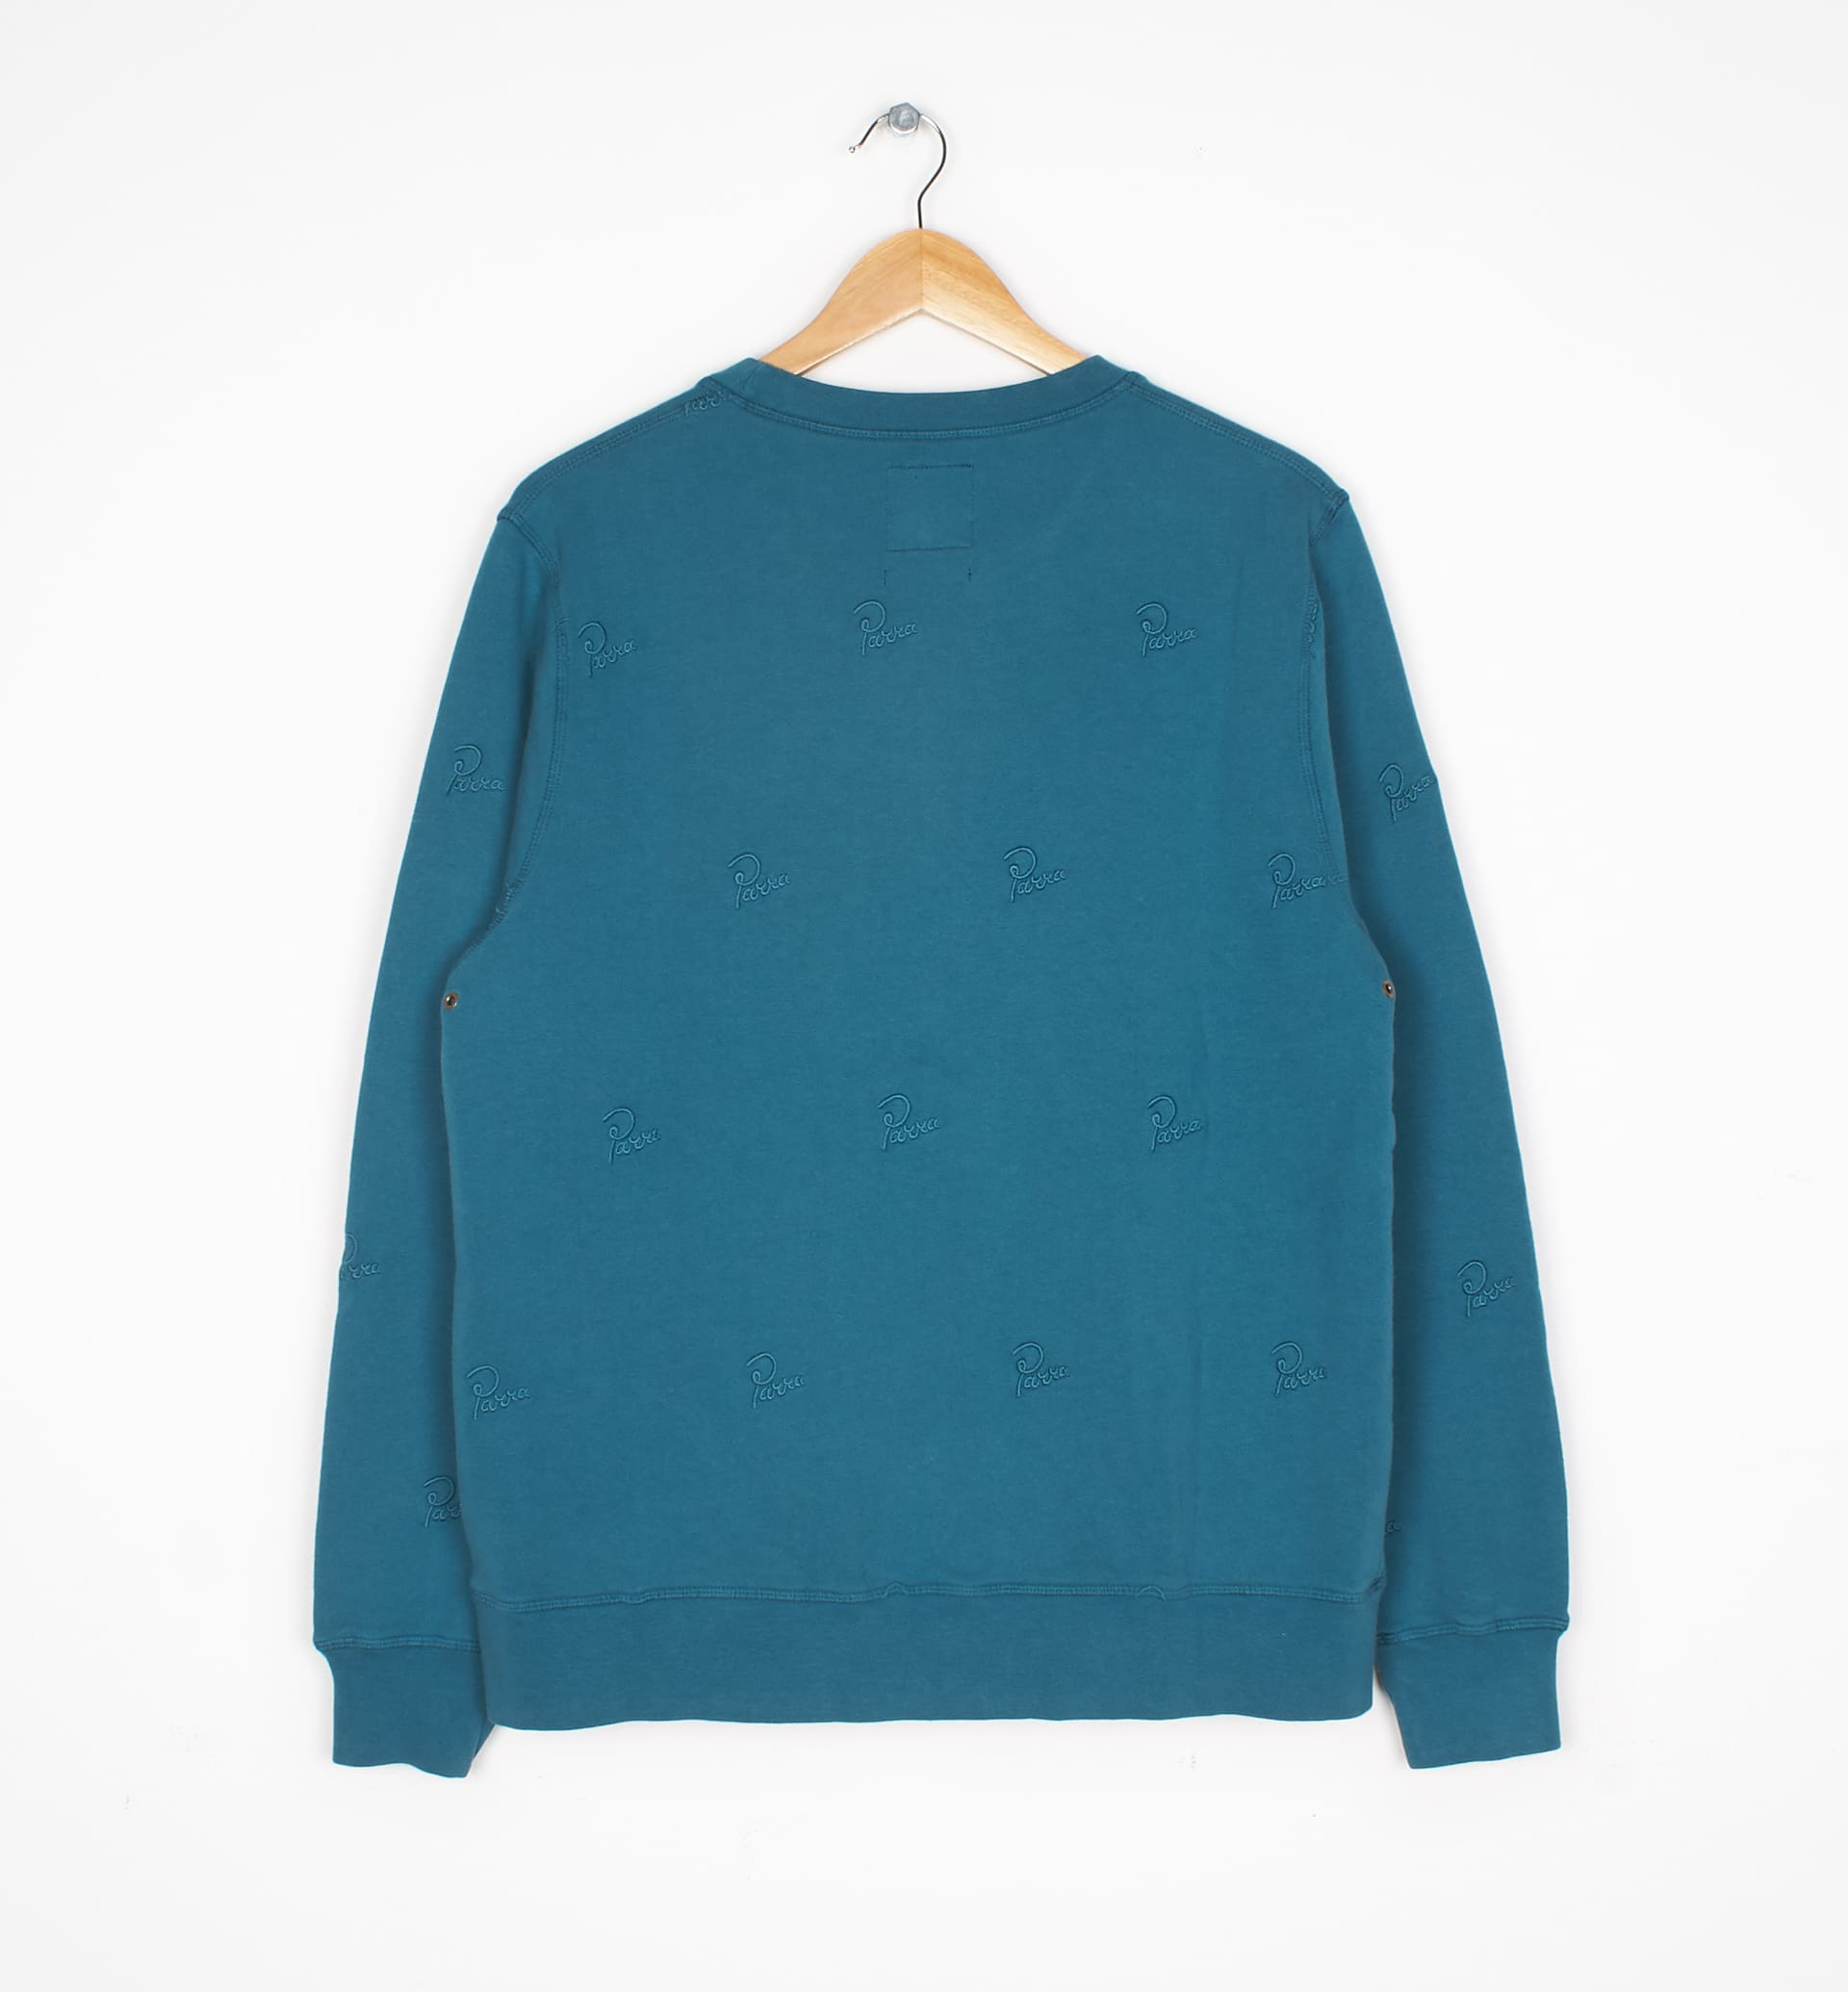 Parra - signature allover crewneck